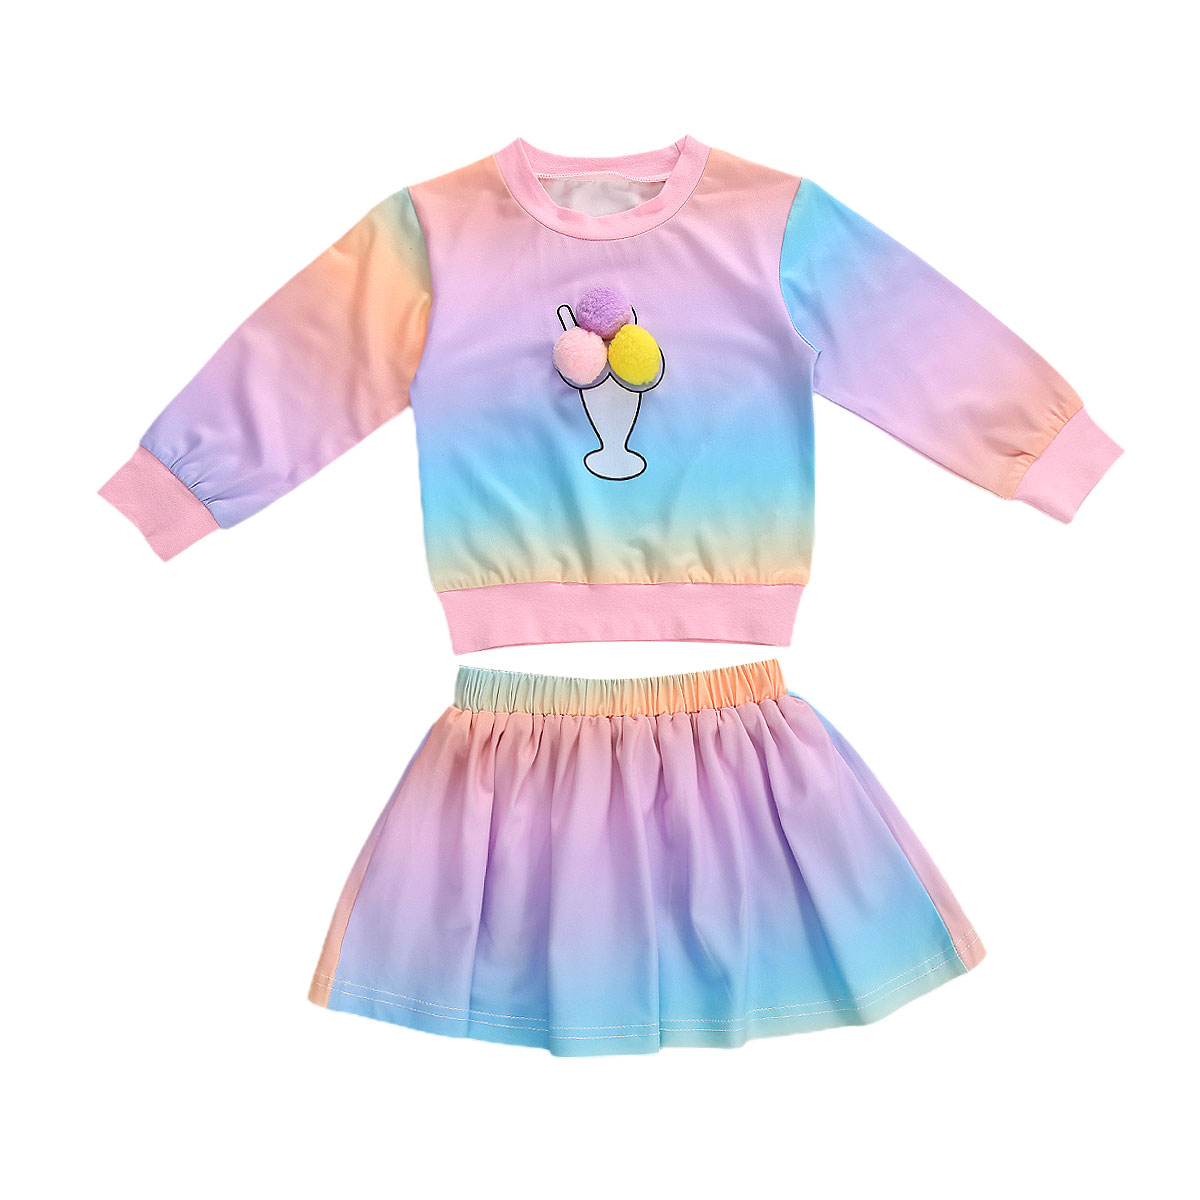 1-5Y Autumn Fashion Girls Clothing Sets Kids Baby Girls Ice Cream Gradient Print Sweatshirts Tops+A-line Skirts Casual Outfits